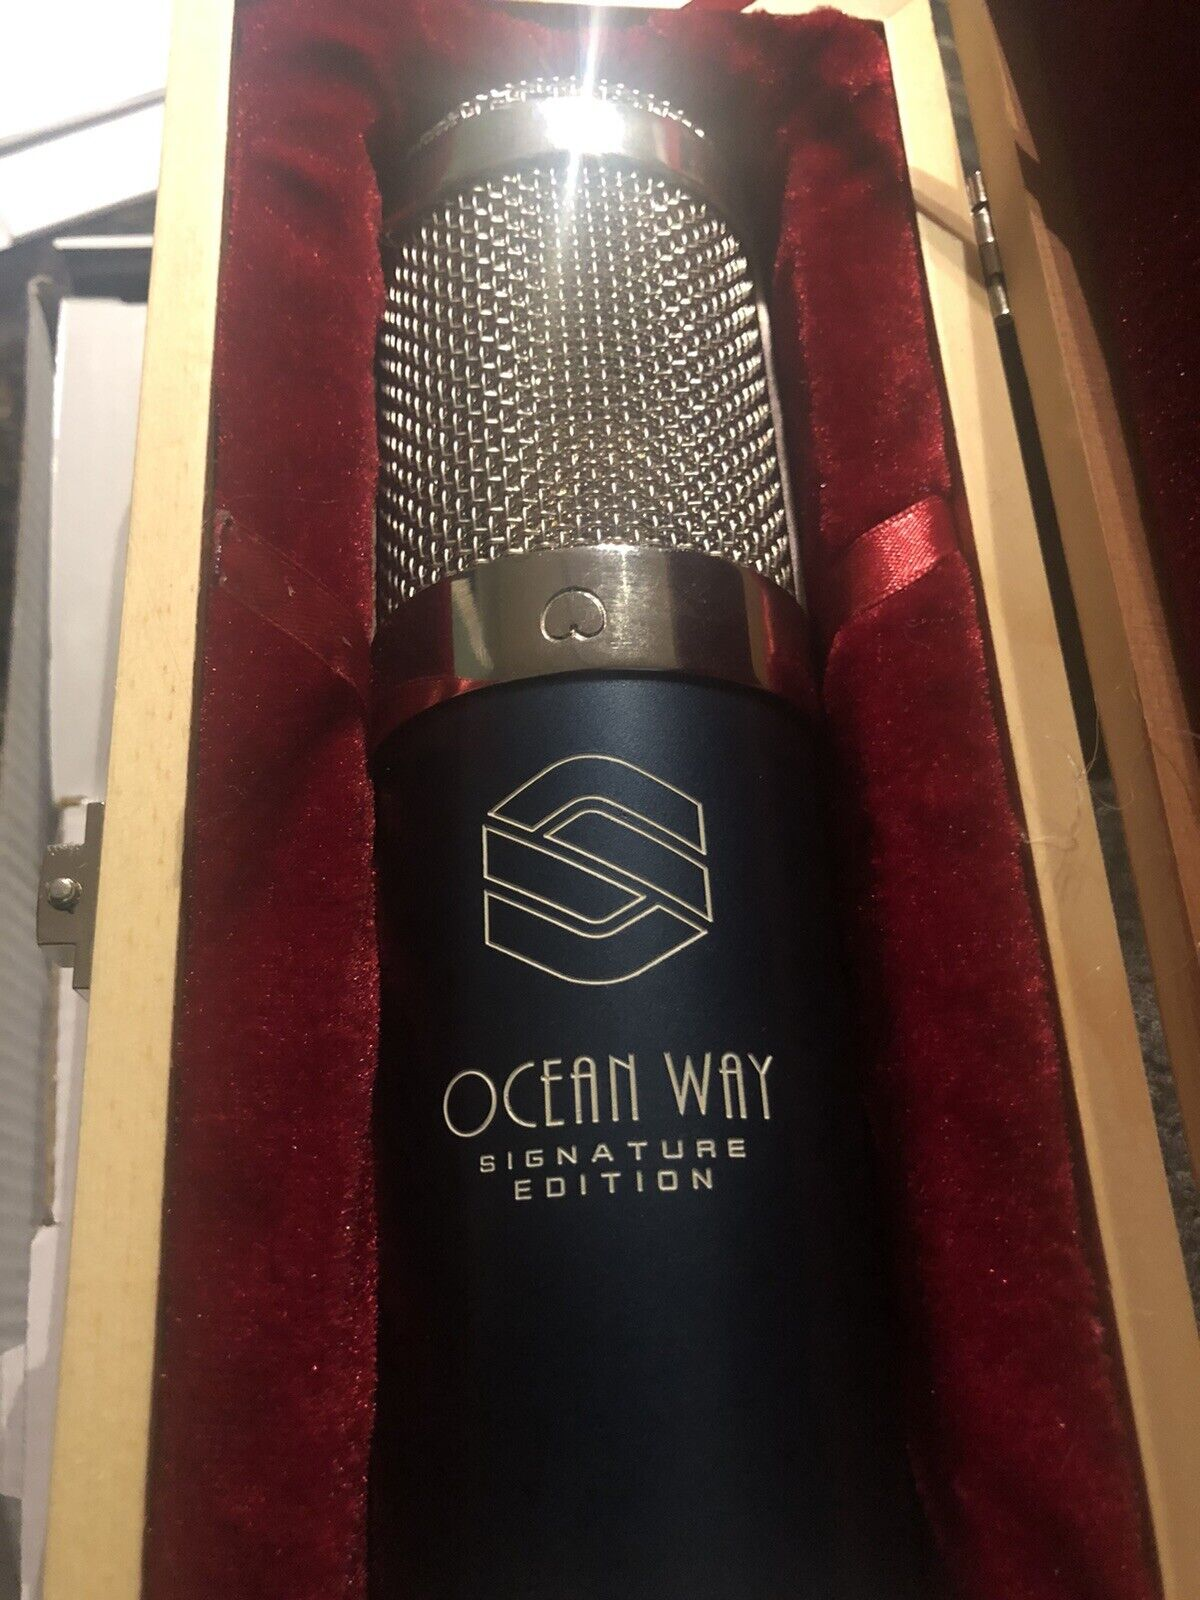 Sterling Audio Ocean Way Signature Edition Allen Sides ST6050 Condenser Mic. Buy it now for 600.00